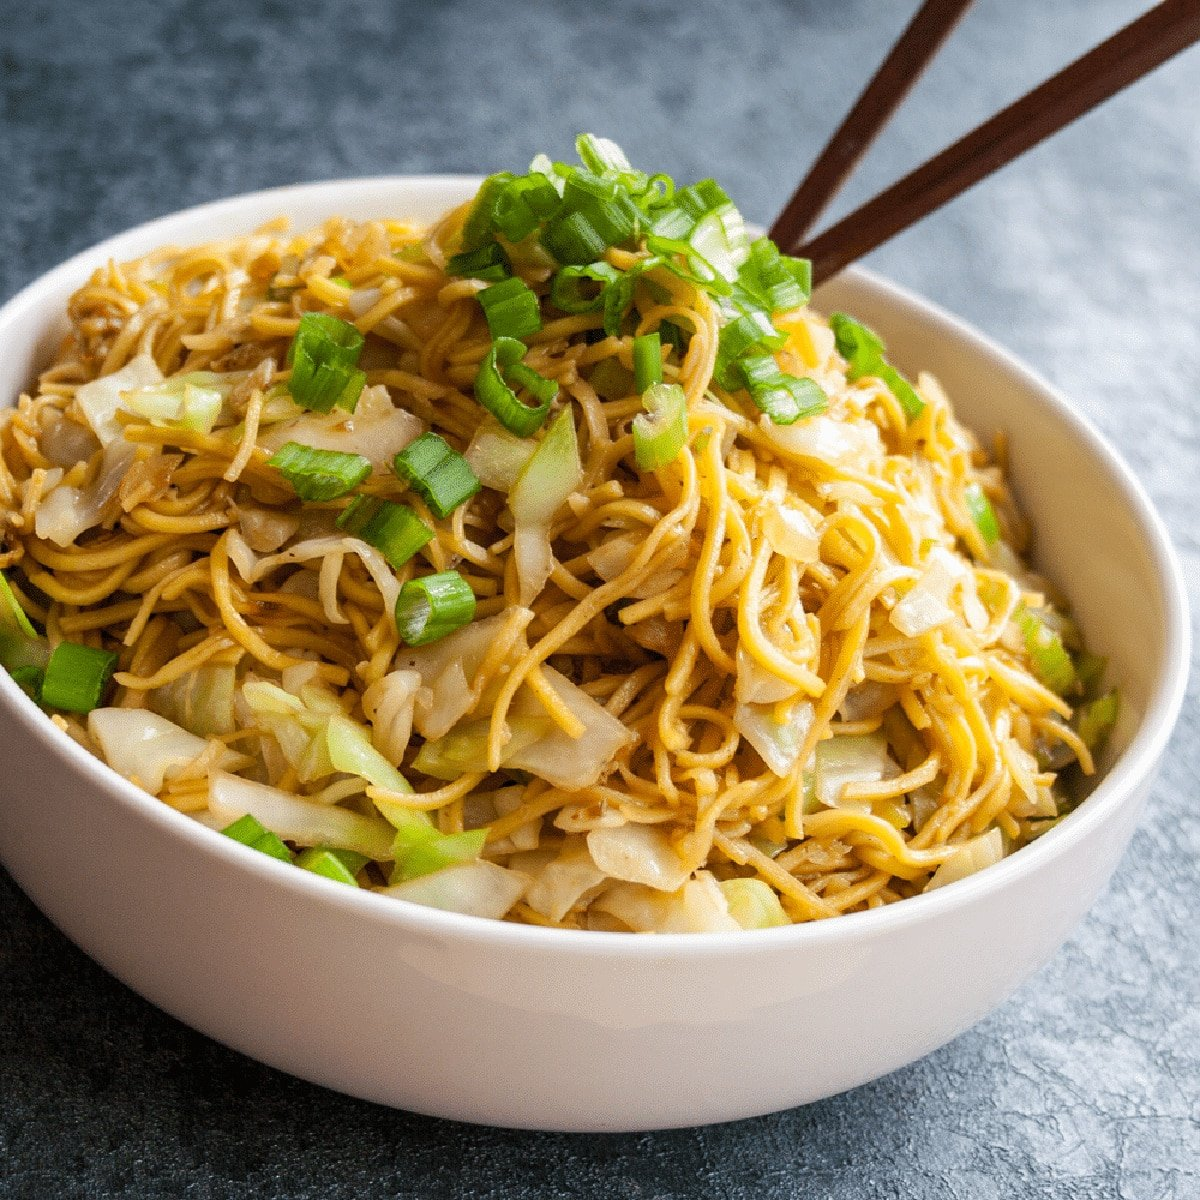 Panda Express Chow Mein in a white bowl with chopsticks.